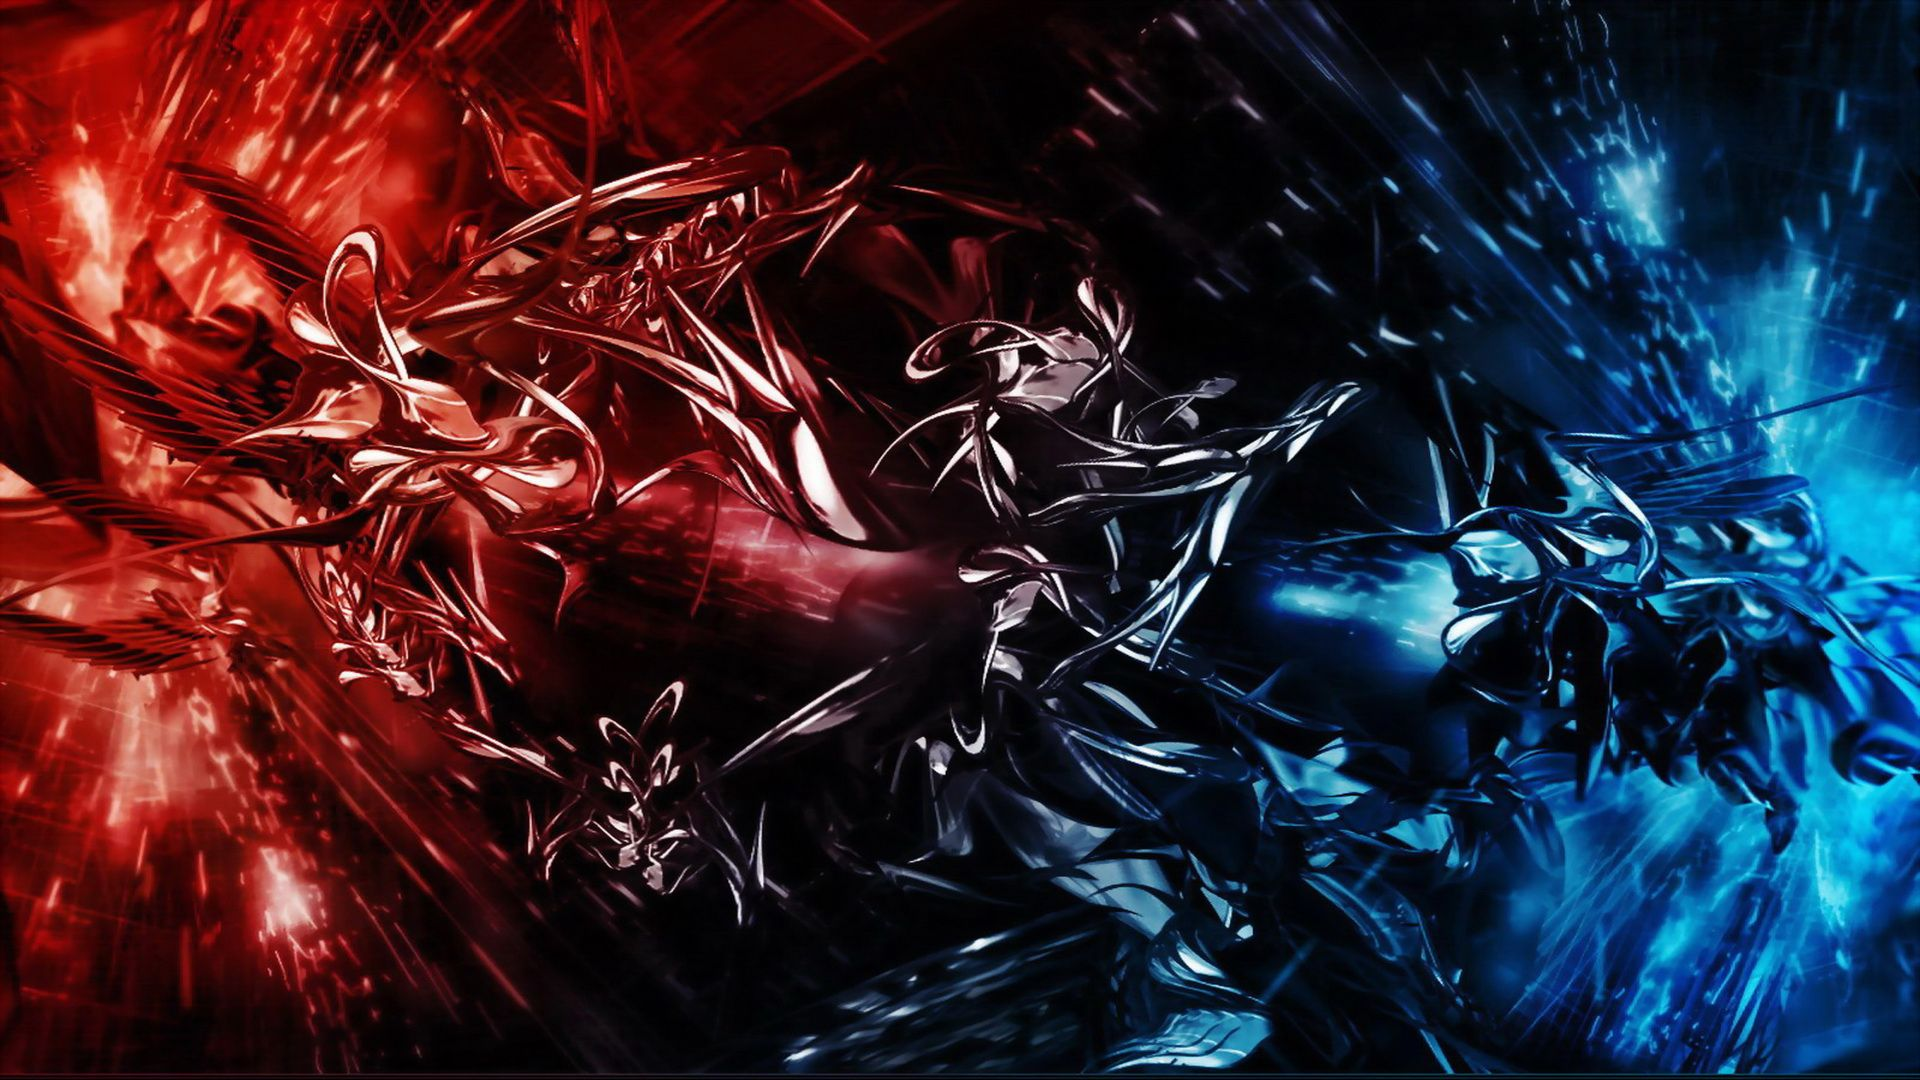 Abstract Colour Cool Hd Wallpaper 2972 Wallpaper Computer Abstract Abstract Art Wallpaper Art Wallpaper